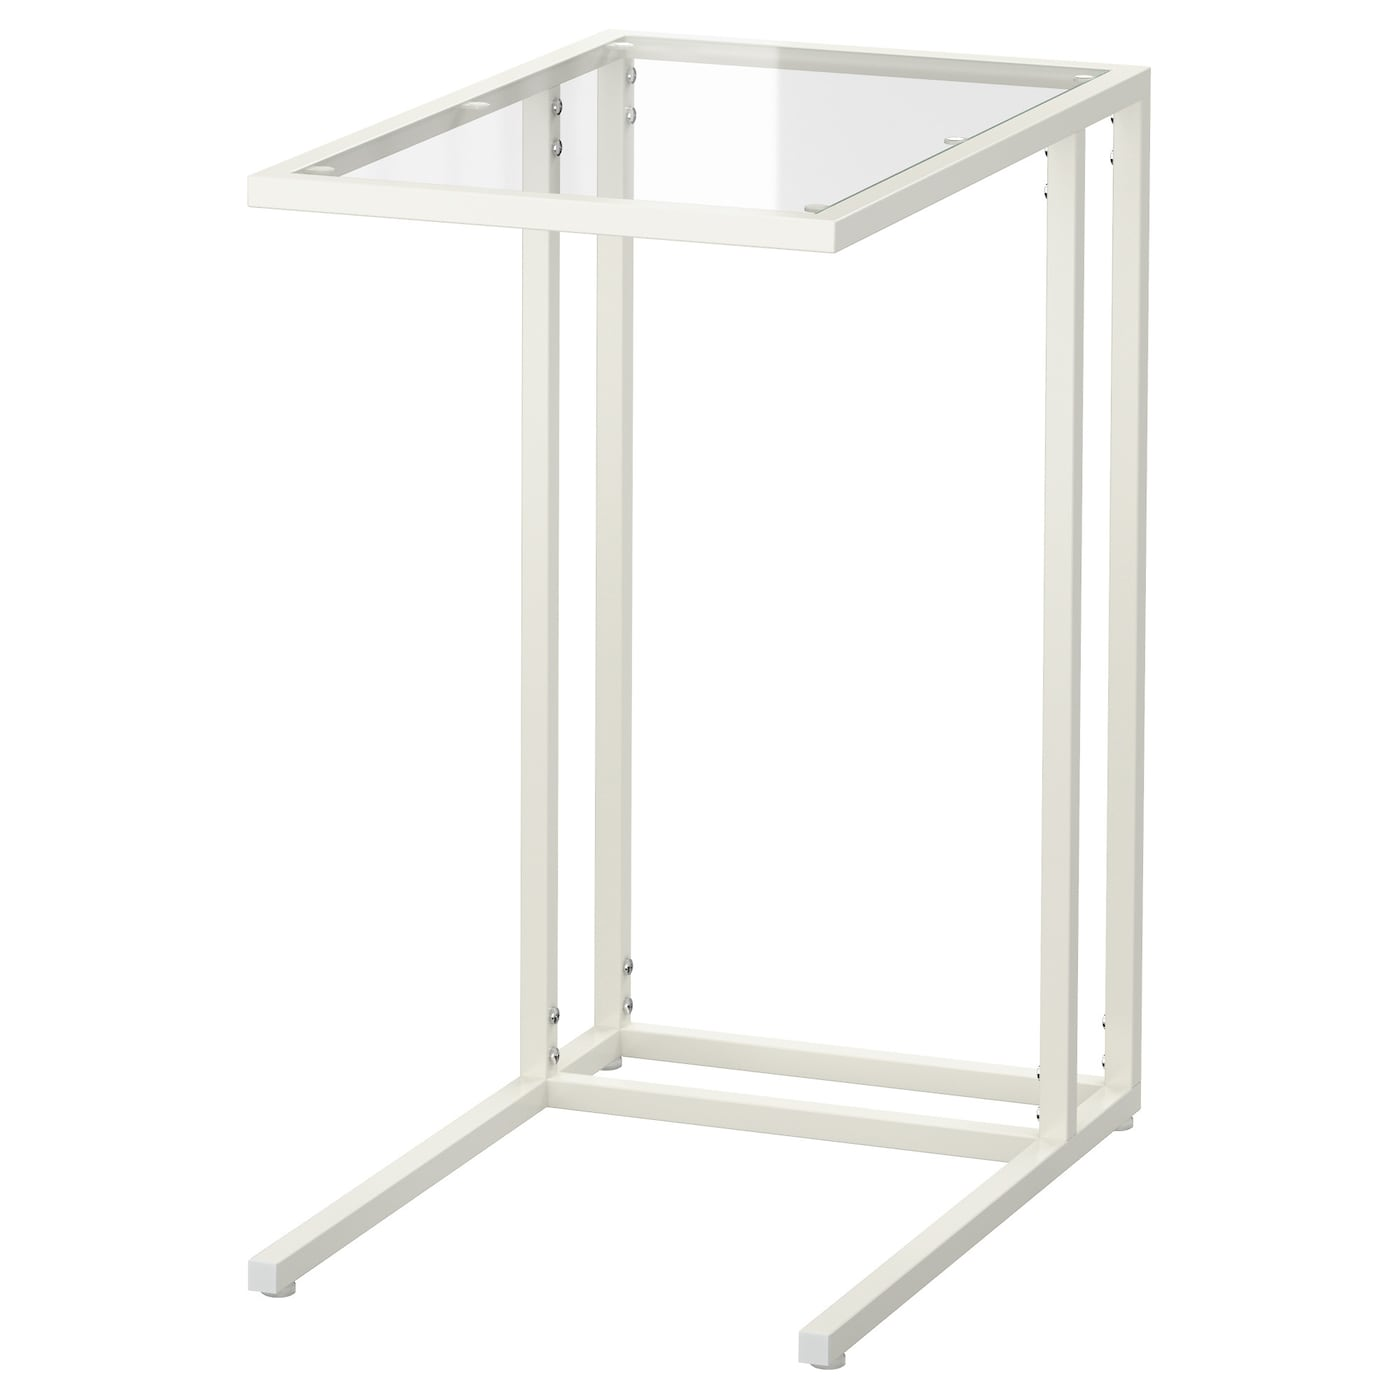 vittsj support pr portable blanc verre 35x65 cm ikea. Black Bedroom Furniture Sets. Home Design Ideas